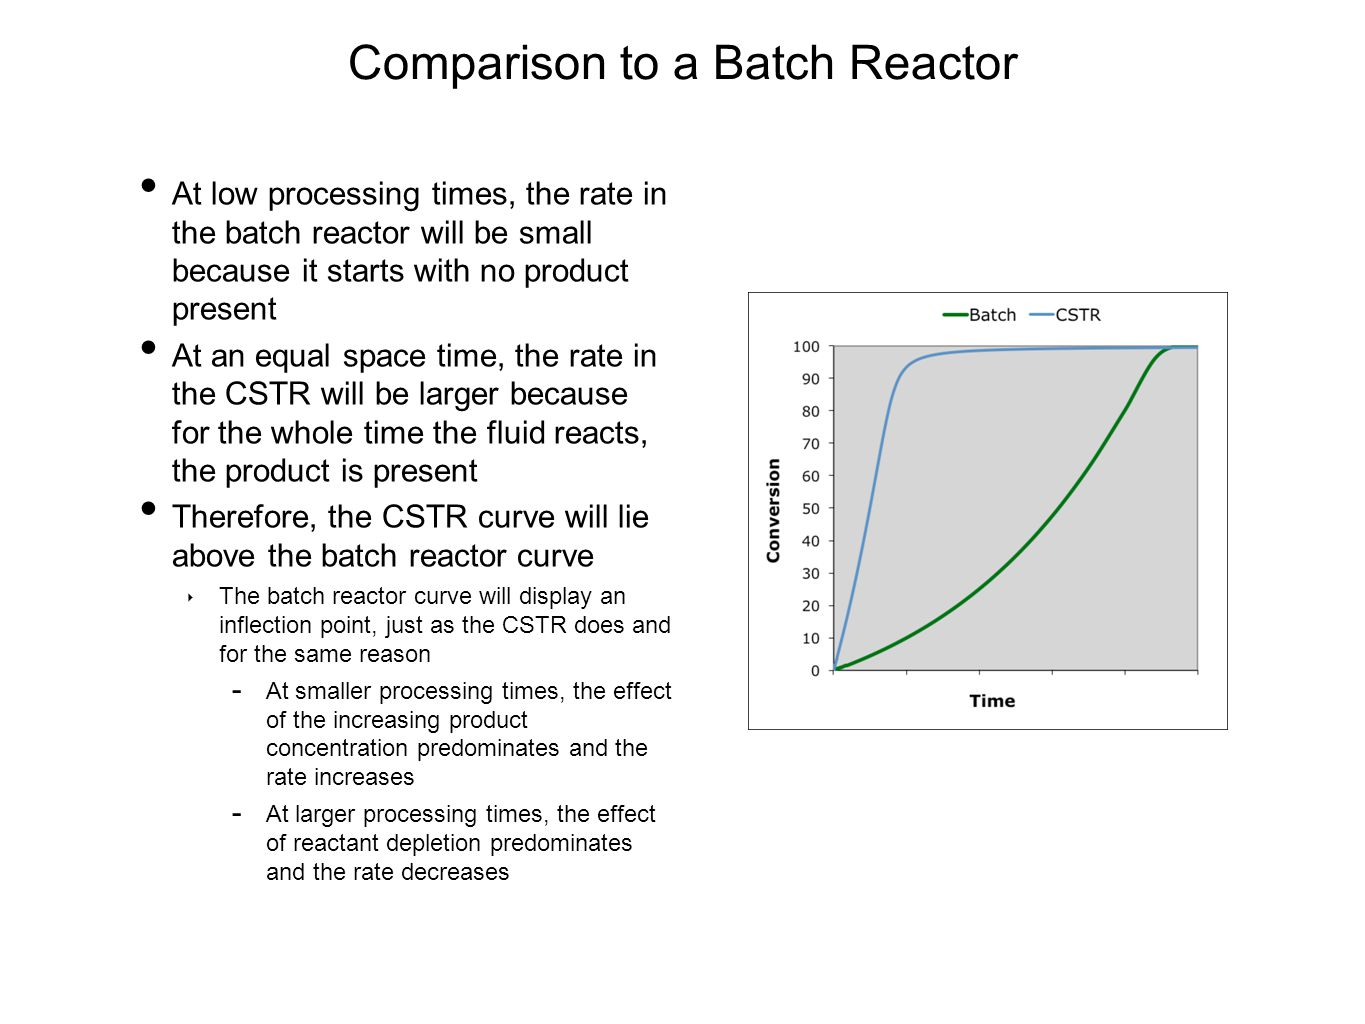 Comparison to a Batch Reactor At low processing times, the rate in the batch reactor will be small because it starts with no product present At an equal space time, the rate in the CSTR will be larger because for the whole time the fluid reacts, the product is present Therefore, the CSTR curve will lie above the batch reactor curve ‣ The batch reactor curve will display an inflection point, just as the CSTR does and for the same reason  At smaller processing times, the effect of the increasing product concentration predominates and the rate increases  At larger processing times, the effect of reactant depletion predominates and the rate decreases